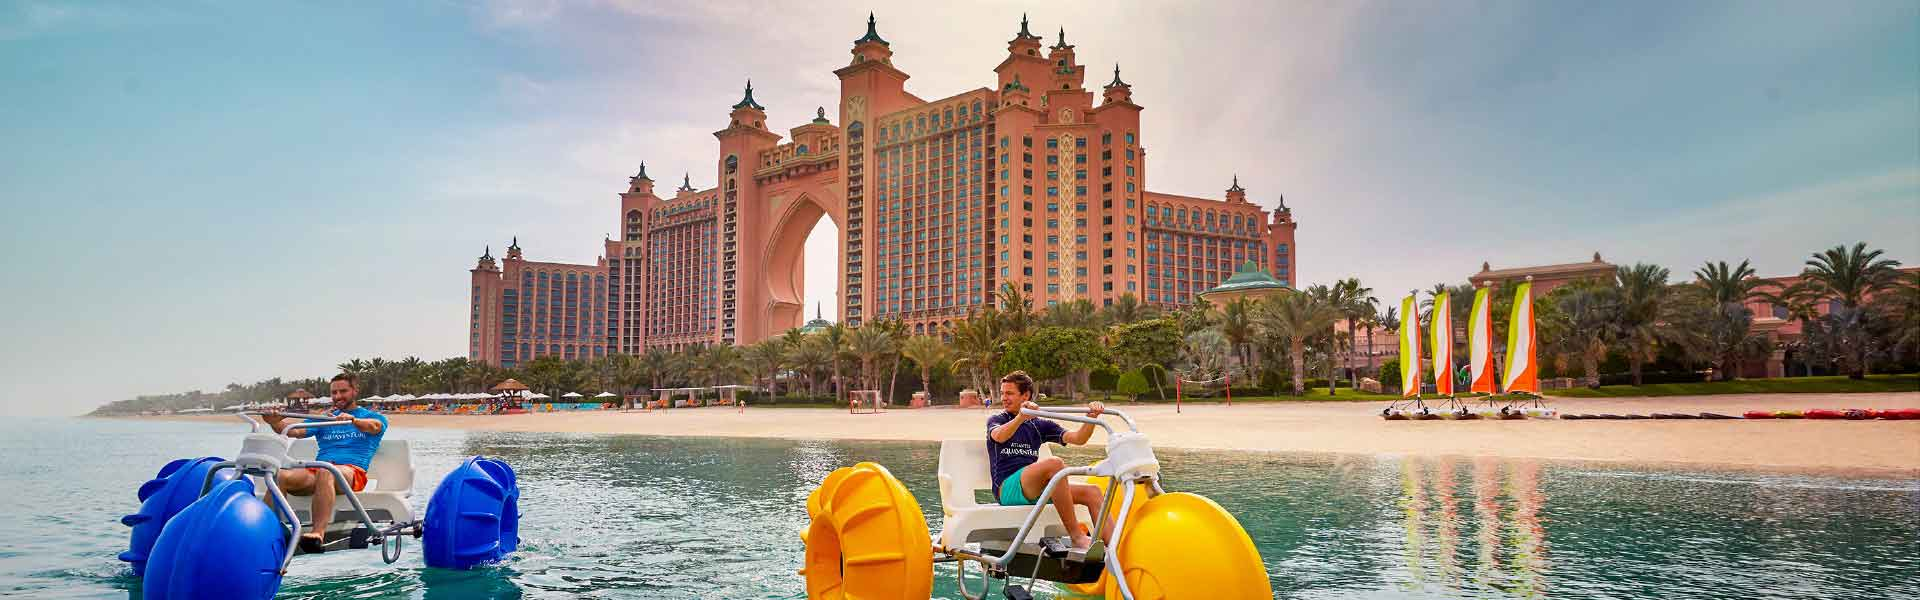 Banner image of Hotel Atlantis and tourist enjoying in the beach